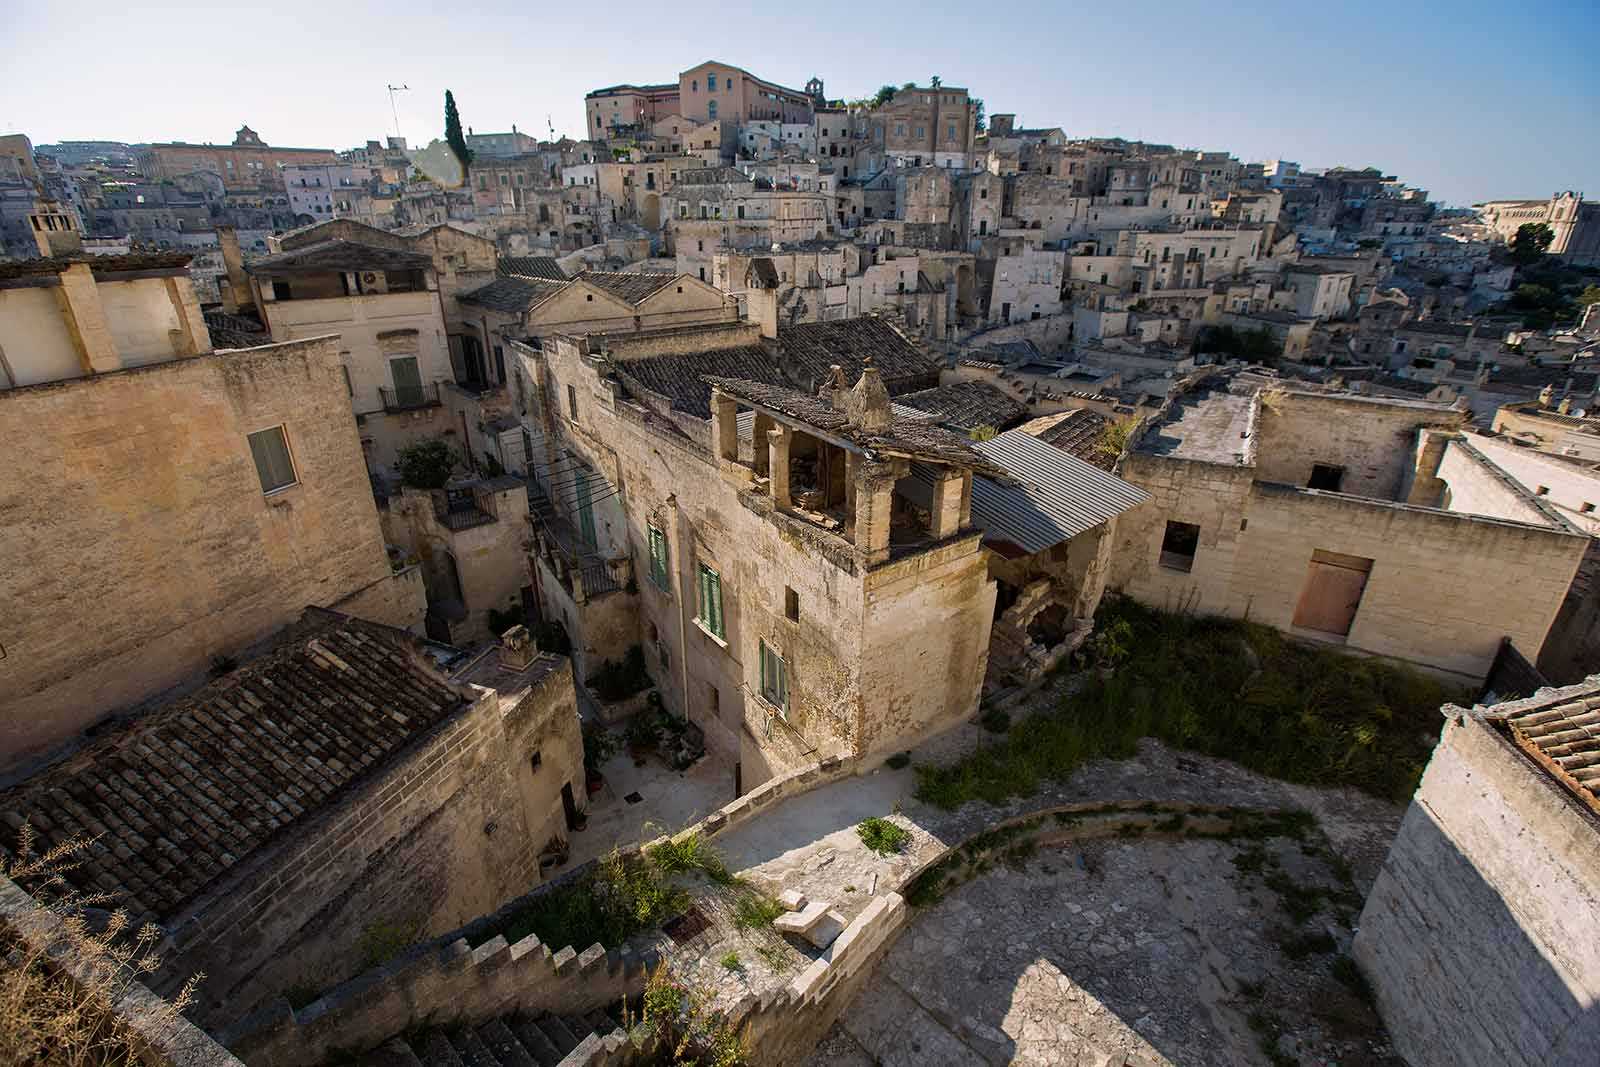 Today approximately 2.000 people live in Sassi di Matera. Most of the caves are either still abandoned or occupied by little chic restaurants and hotels.